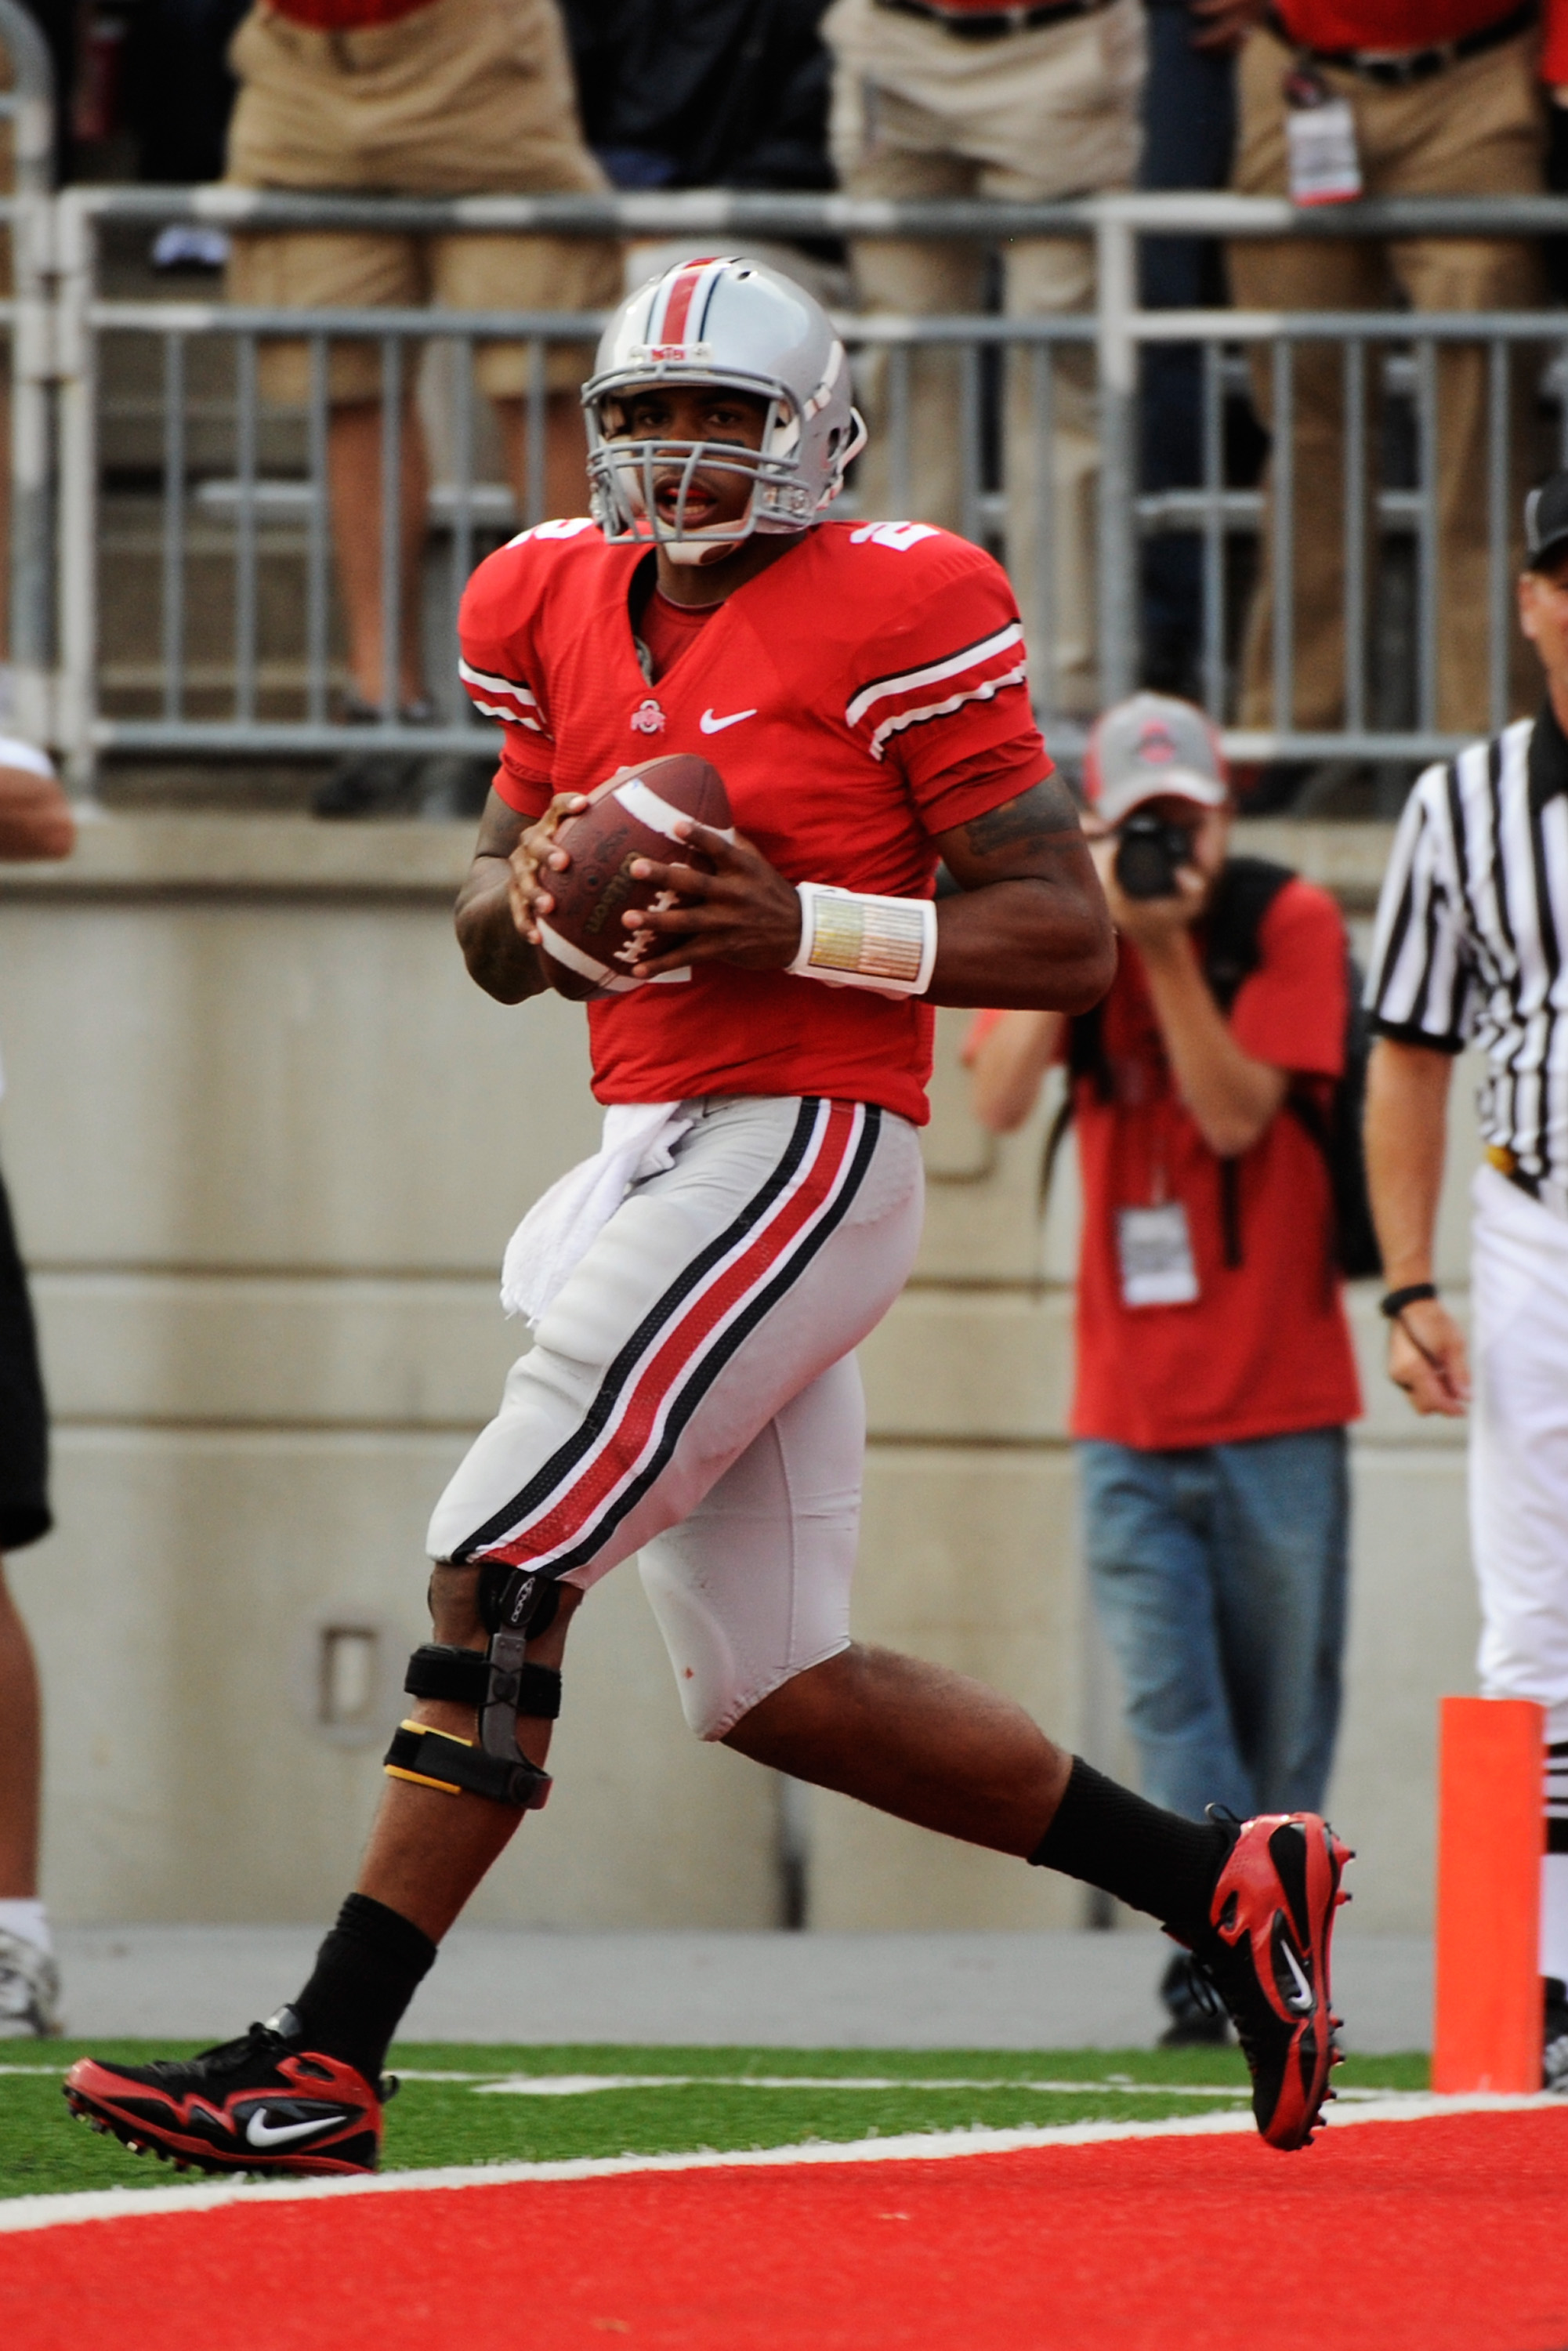 COLUMBUS, OH - SEPTEMBER 25:  Terrelle Pryor #2 of the Ohio State Buckeyes backs into the endzone for a touchdown after catching a pass against the Eastern Michigan Eagles at Ohio Stadium on September 25, 2010 in Columbus, Ohio. Pryor threw four touchdown